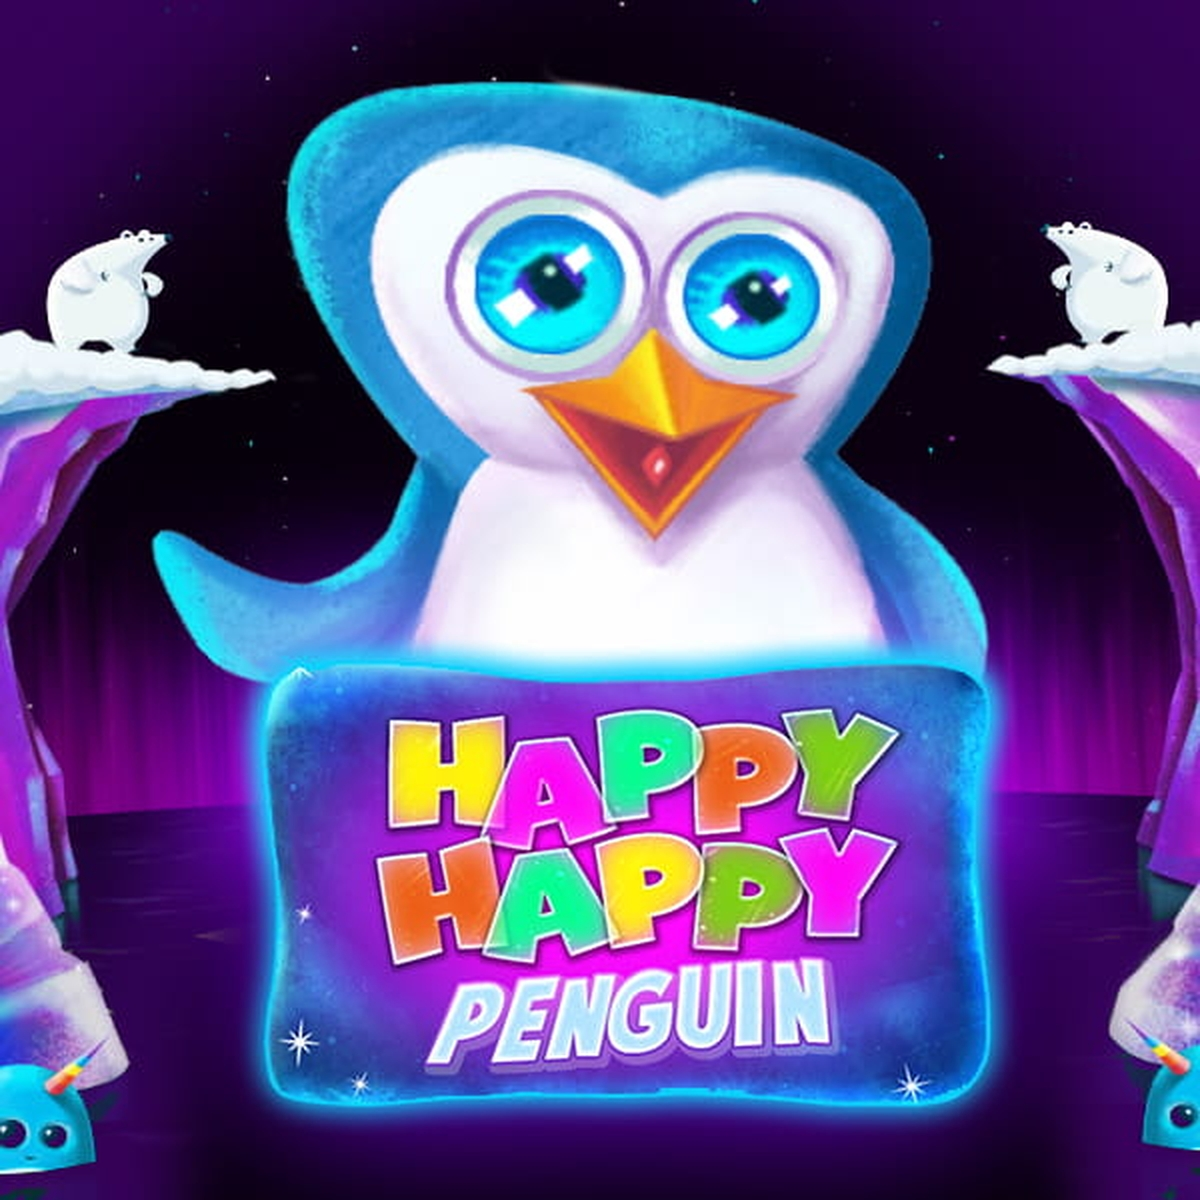 The Happy Happy Penguin Online Slot Demo Game by Top Trend Gaming